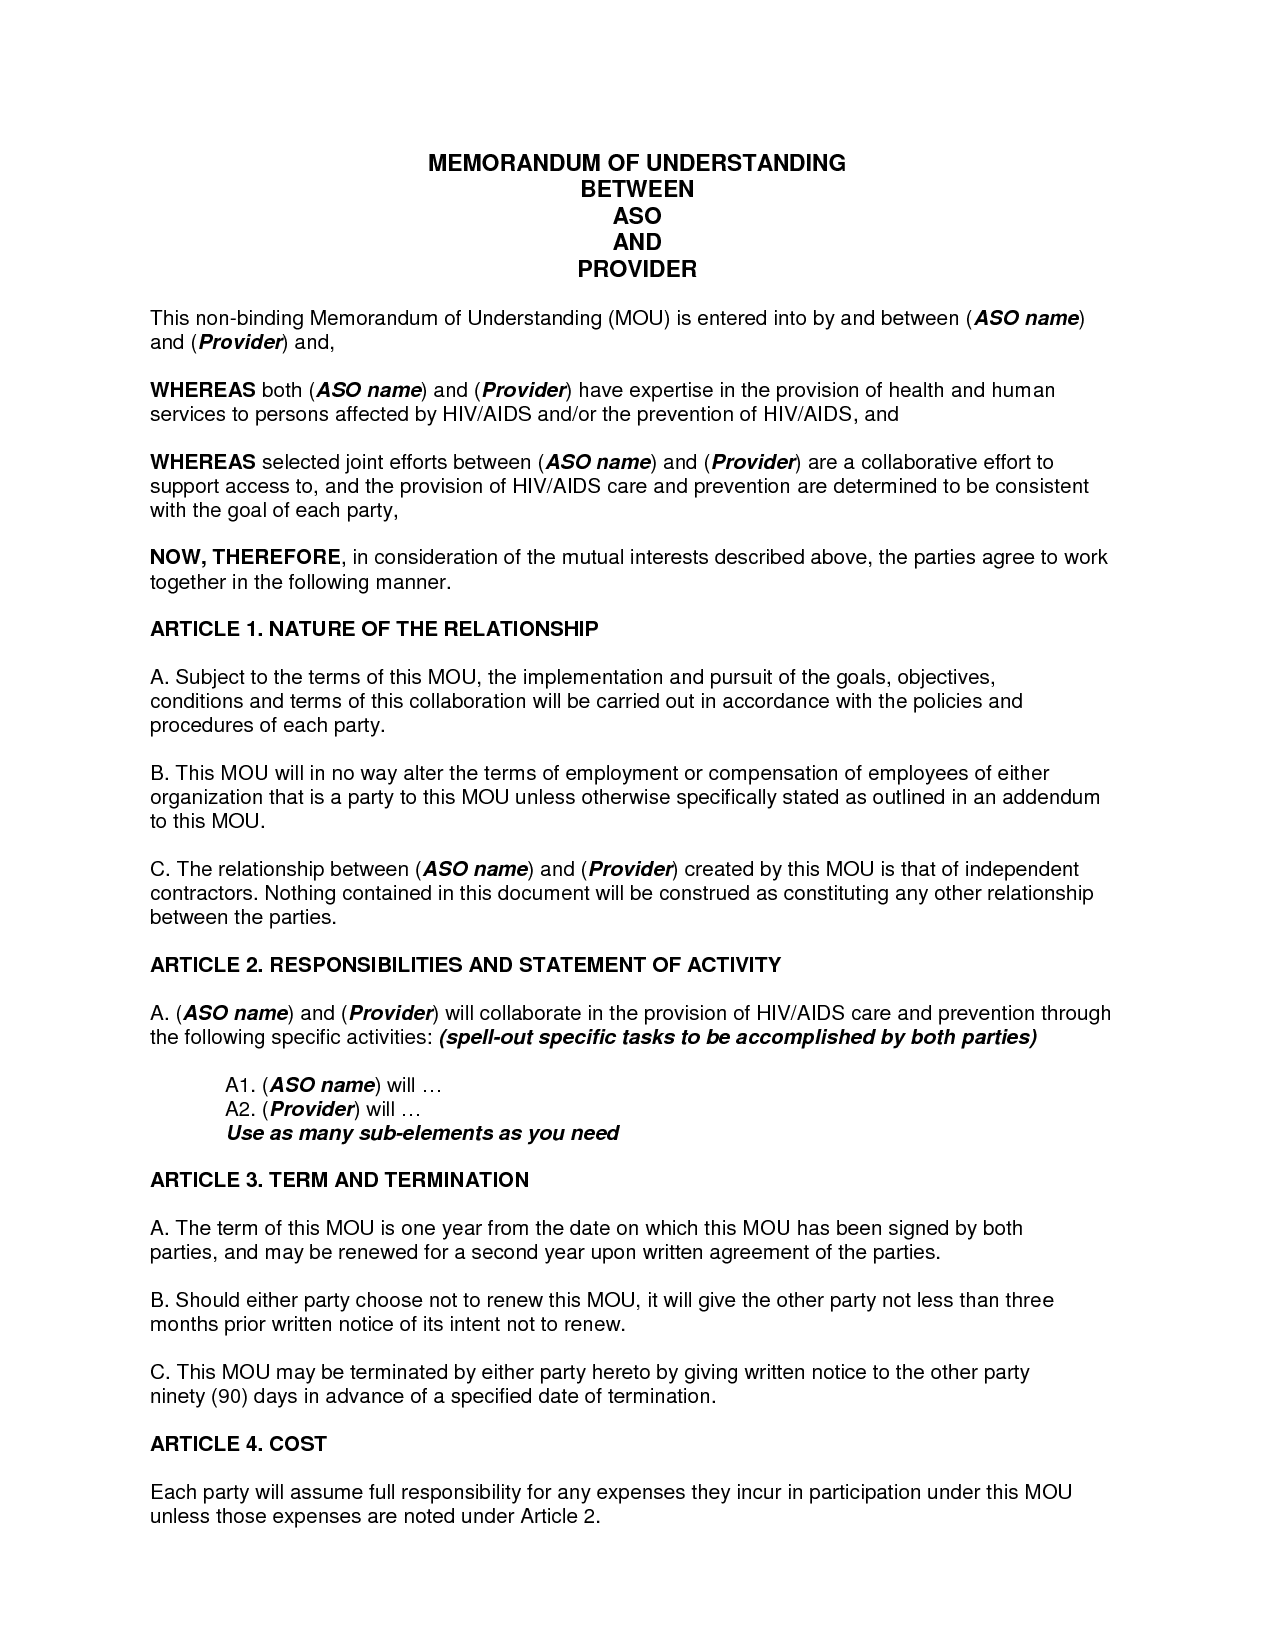 sample memorandum of understanding business partnership doc by